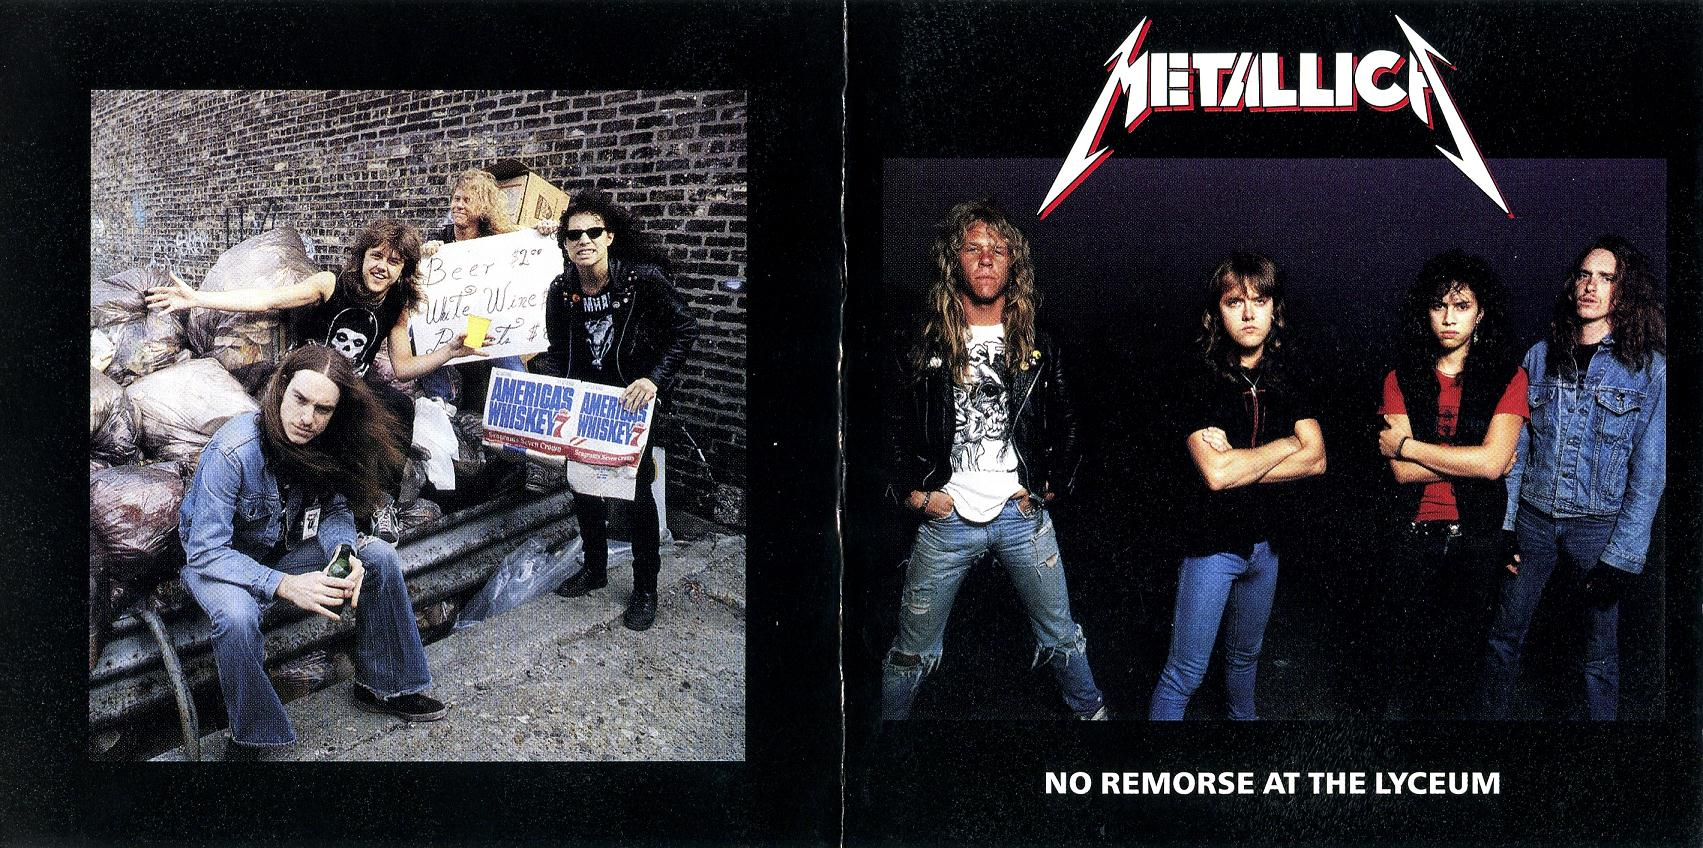 1984-11-12-NO_REMORSE_AT_THE_LYCEUM-front